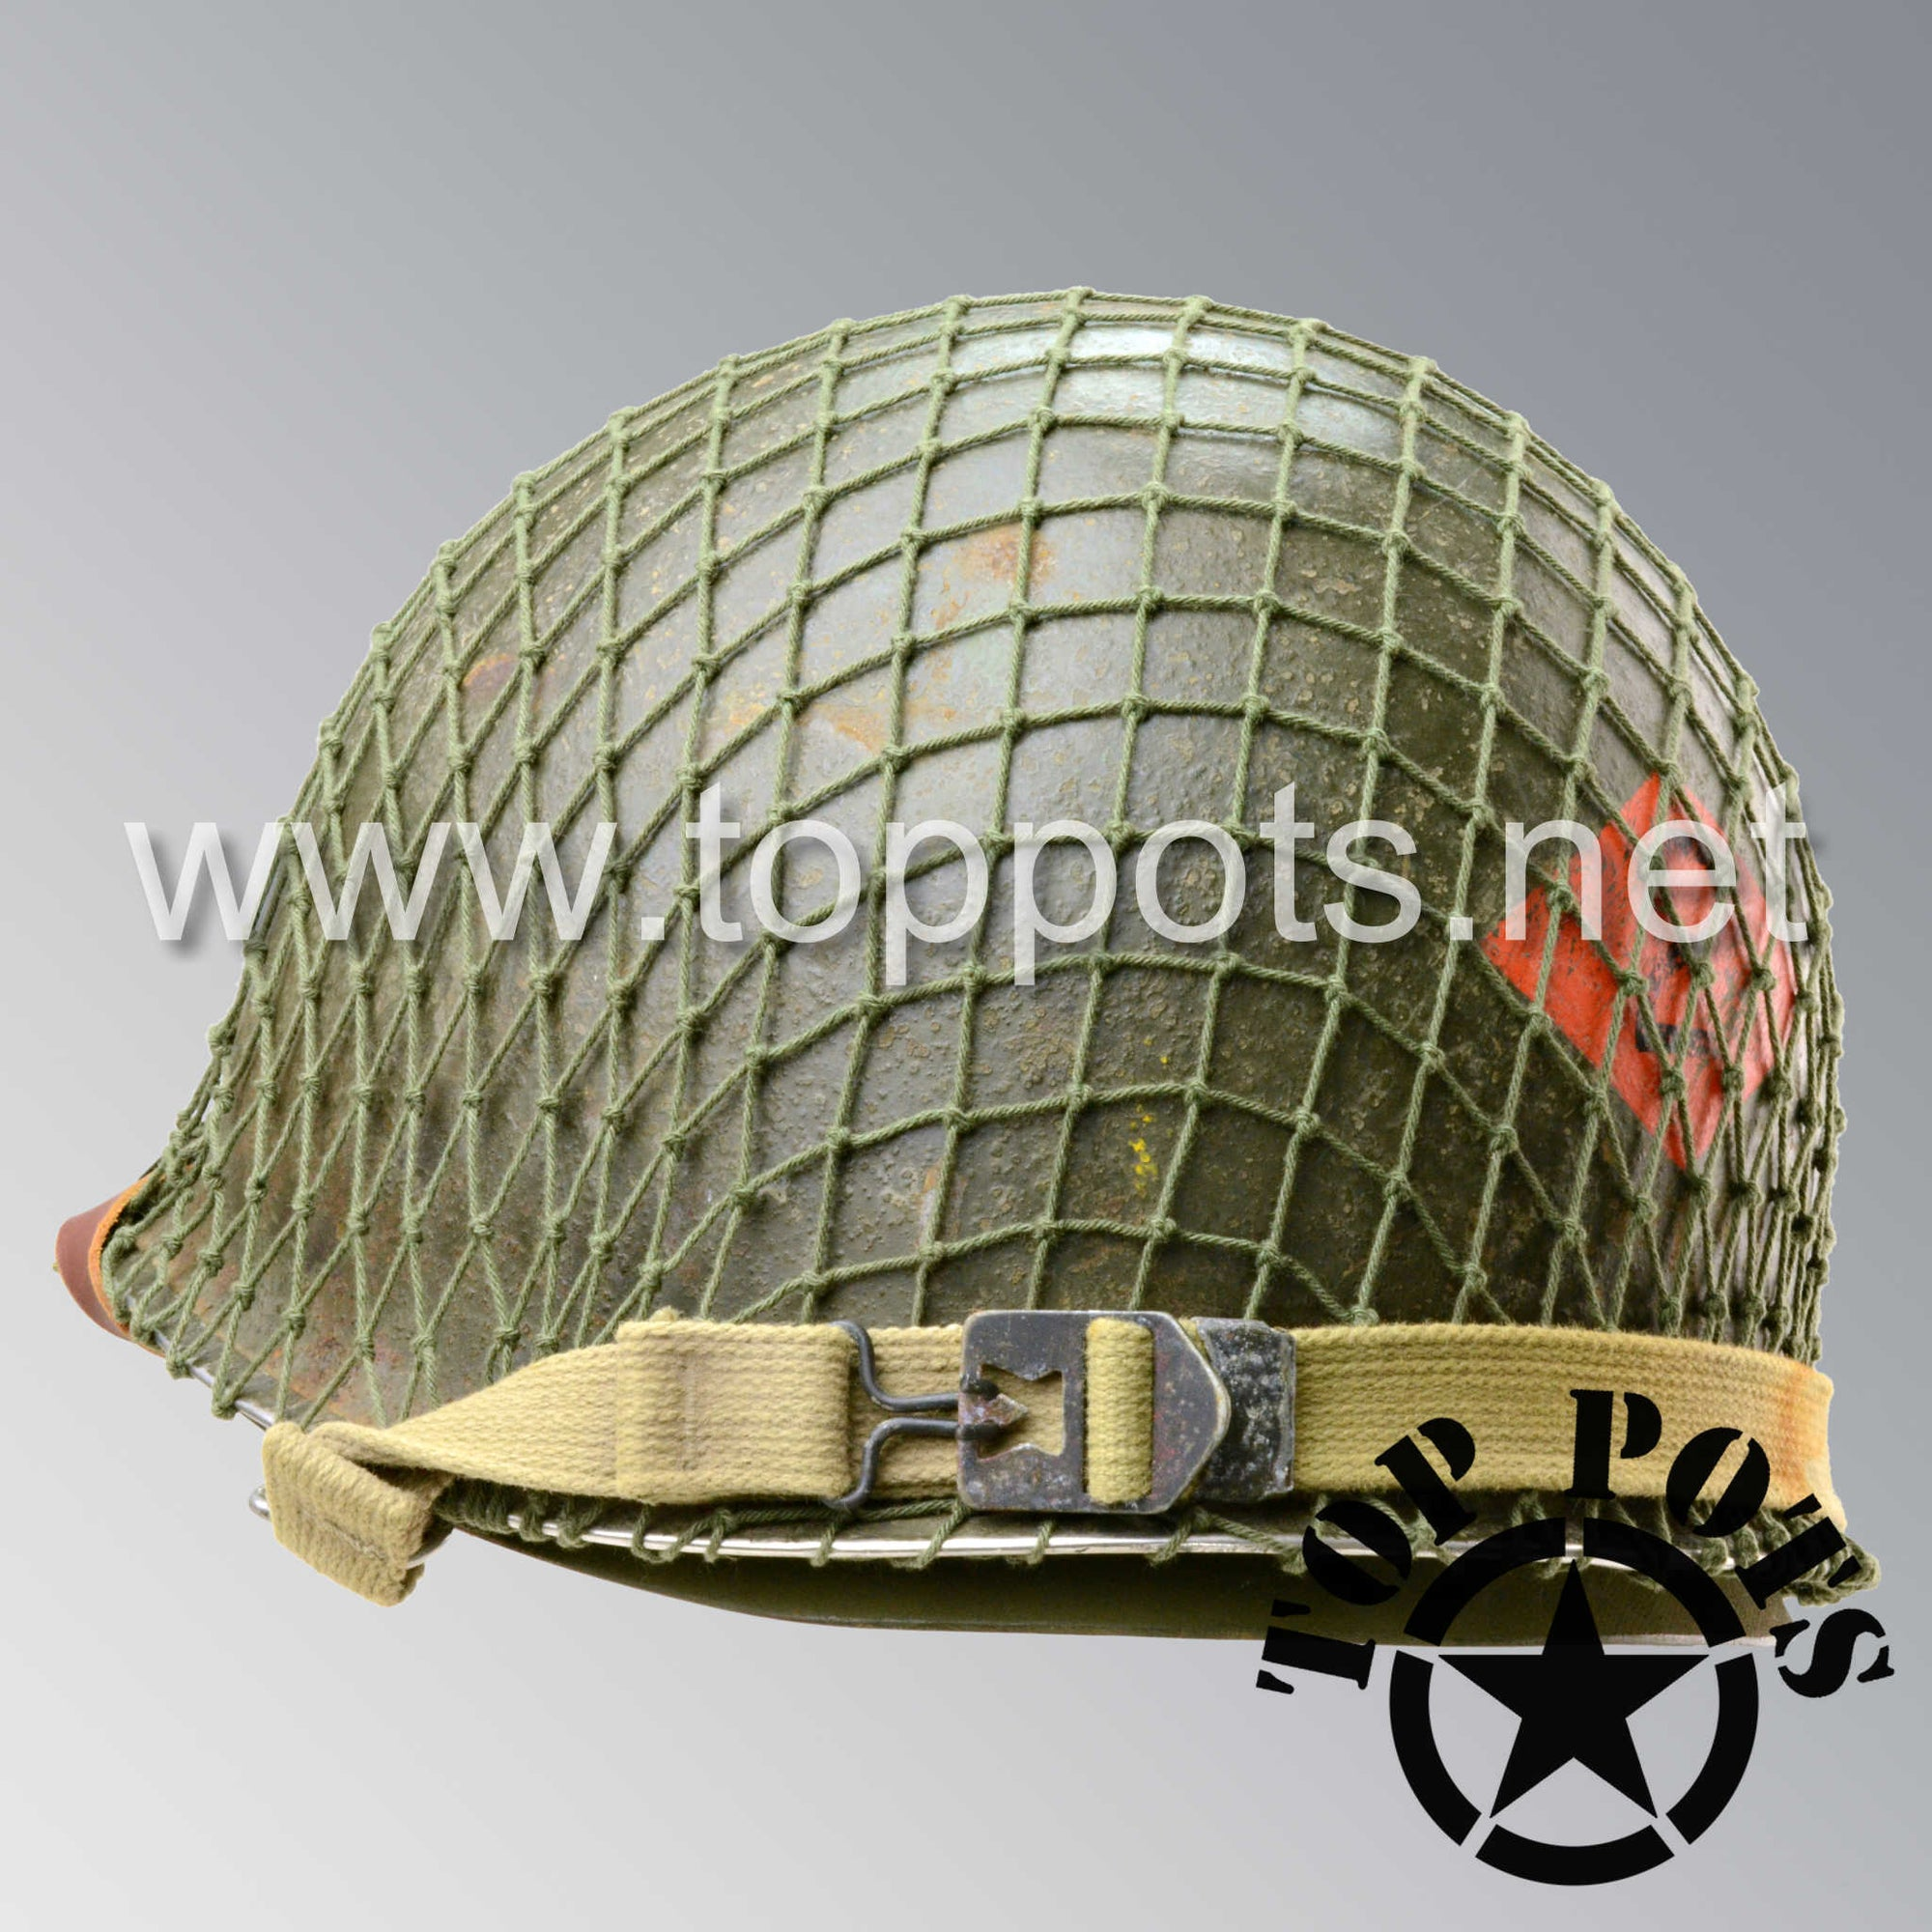 Image 5 of WWII US Army Aged Original M1 Infantry Helmet Swivel Bale Shell and Liner with 2nd Ranger Diamond and OD 7 Net